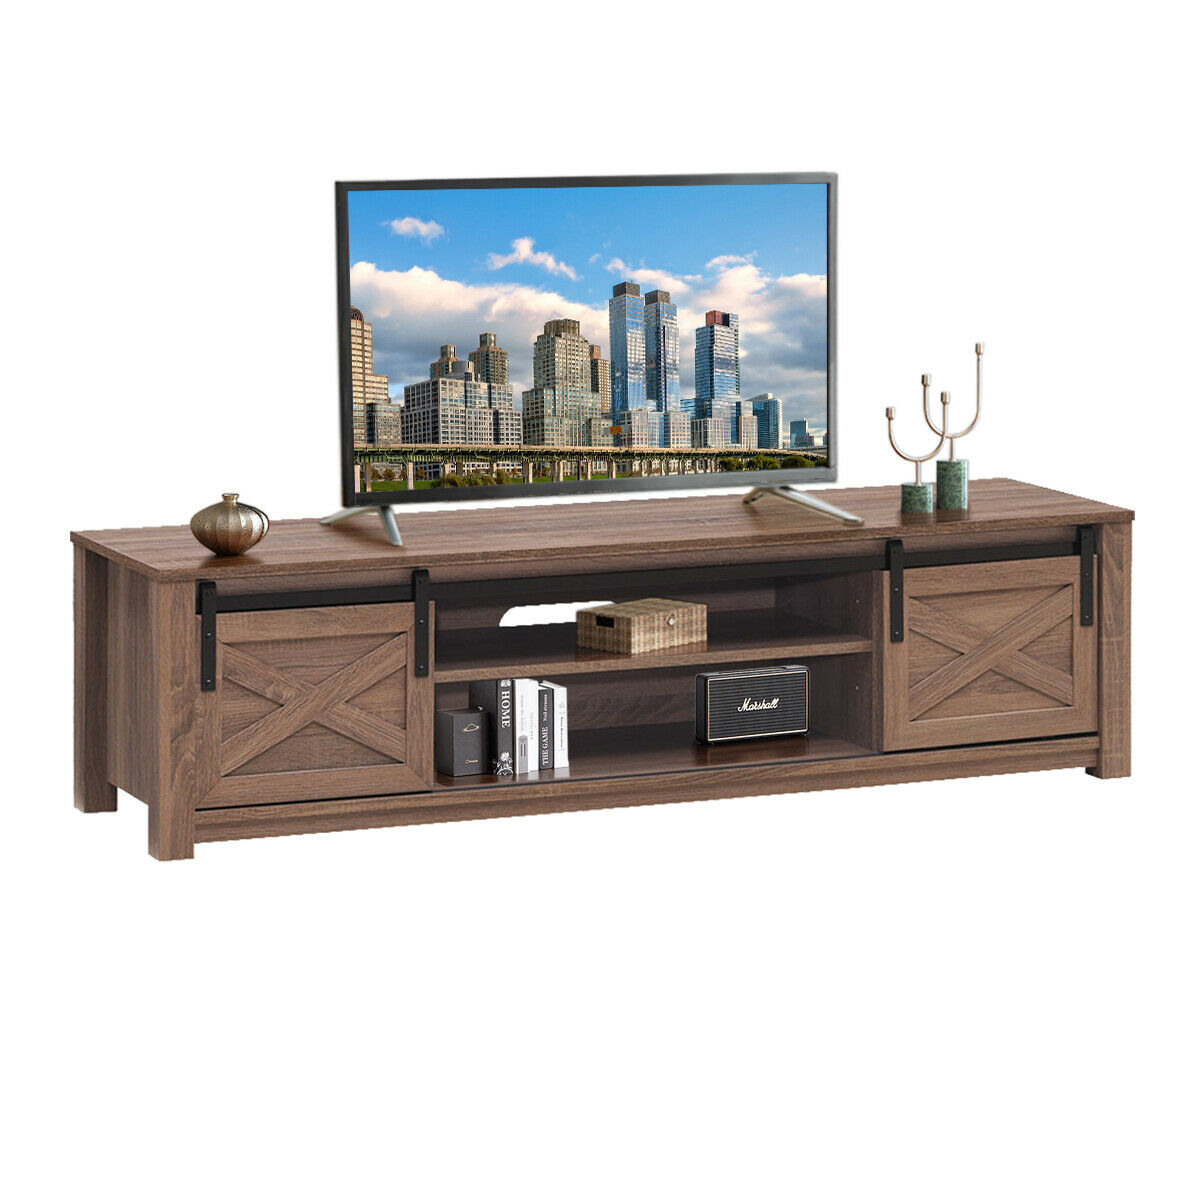 """Gymax Sliding Barn Door Tv Stand For Tv's Up To 65 Regarding Grenier Tv Stands For Tvs Up To 65"""" (View 5 of 15)"""